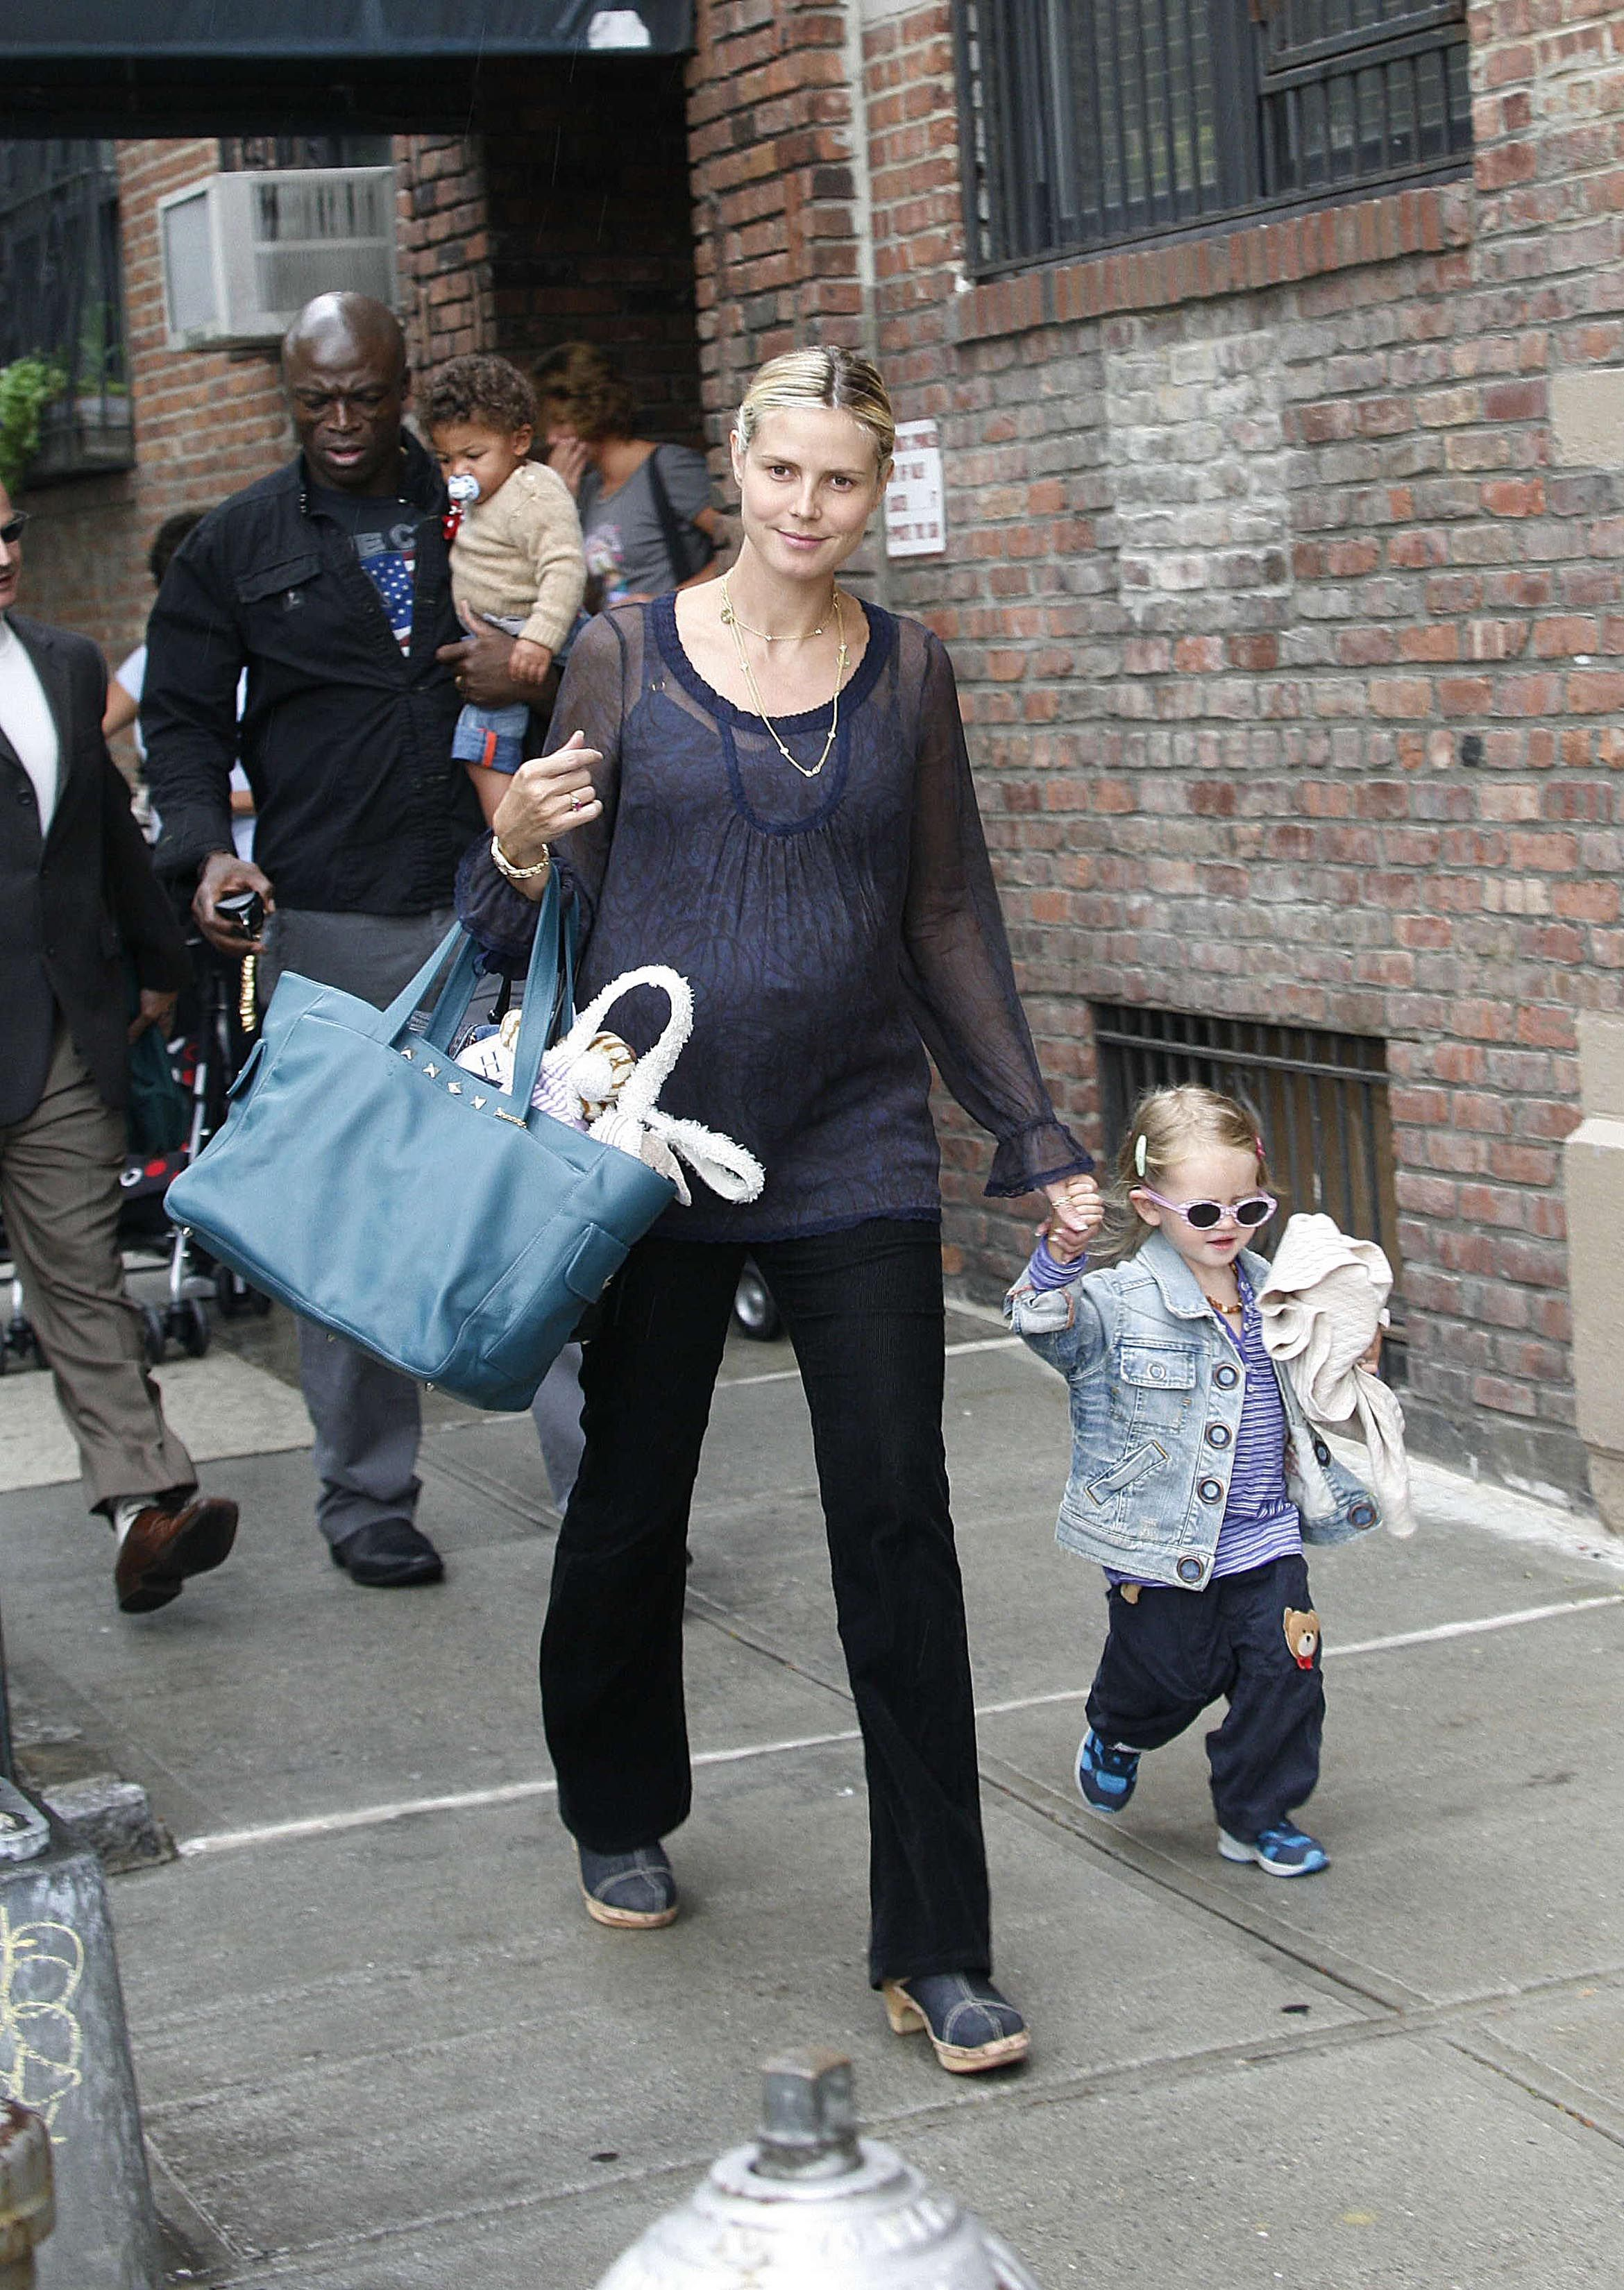 Heidi Klum  and  Seal  Sighting  with  Family  in Chelsea - September 5, 2006